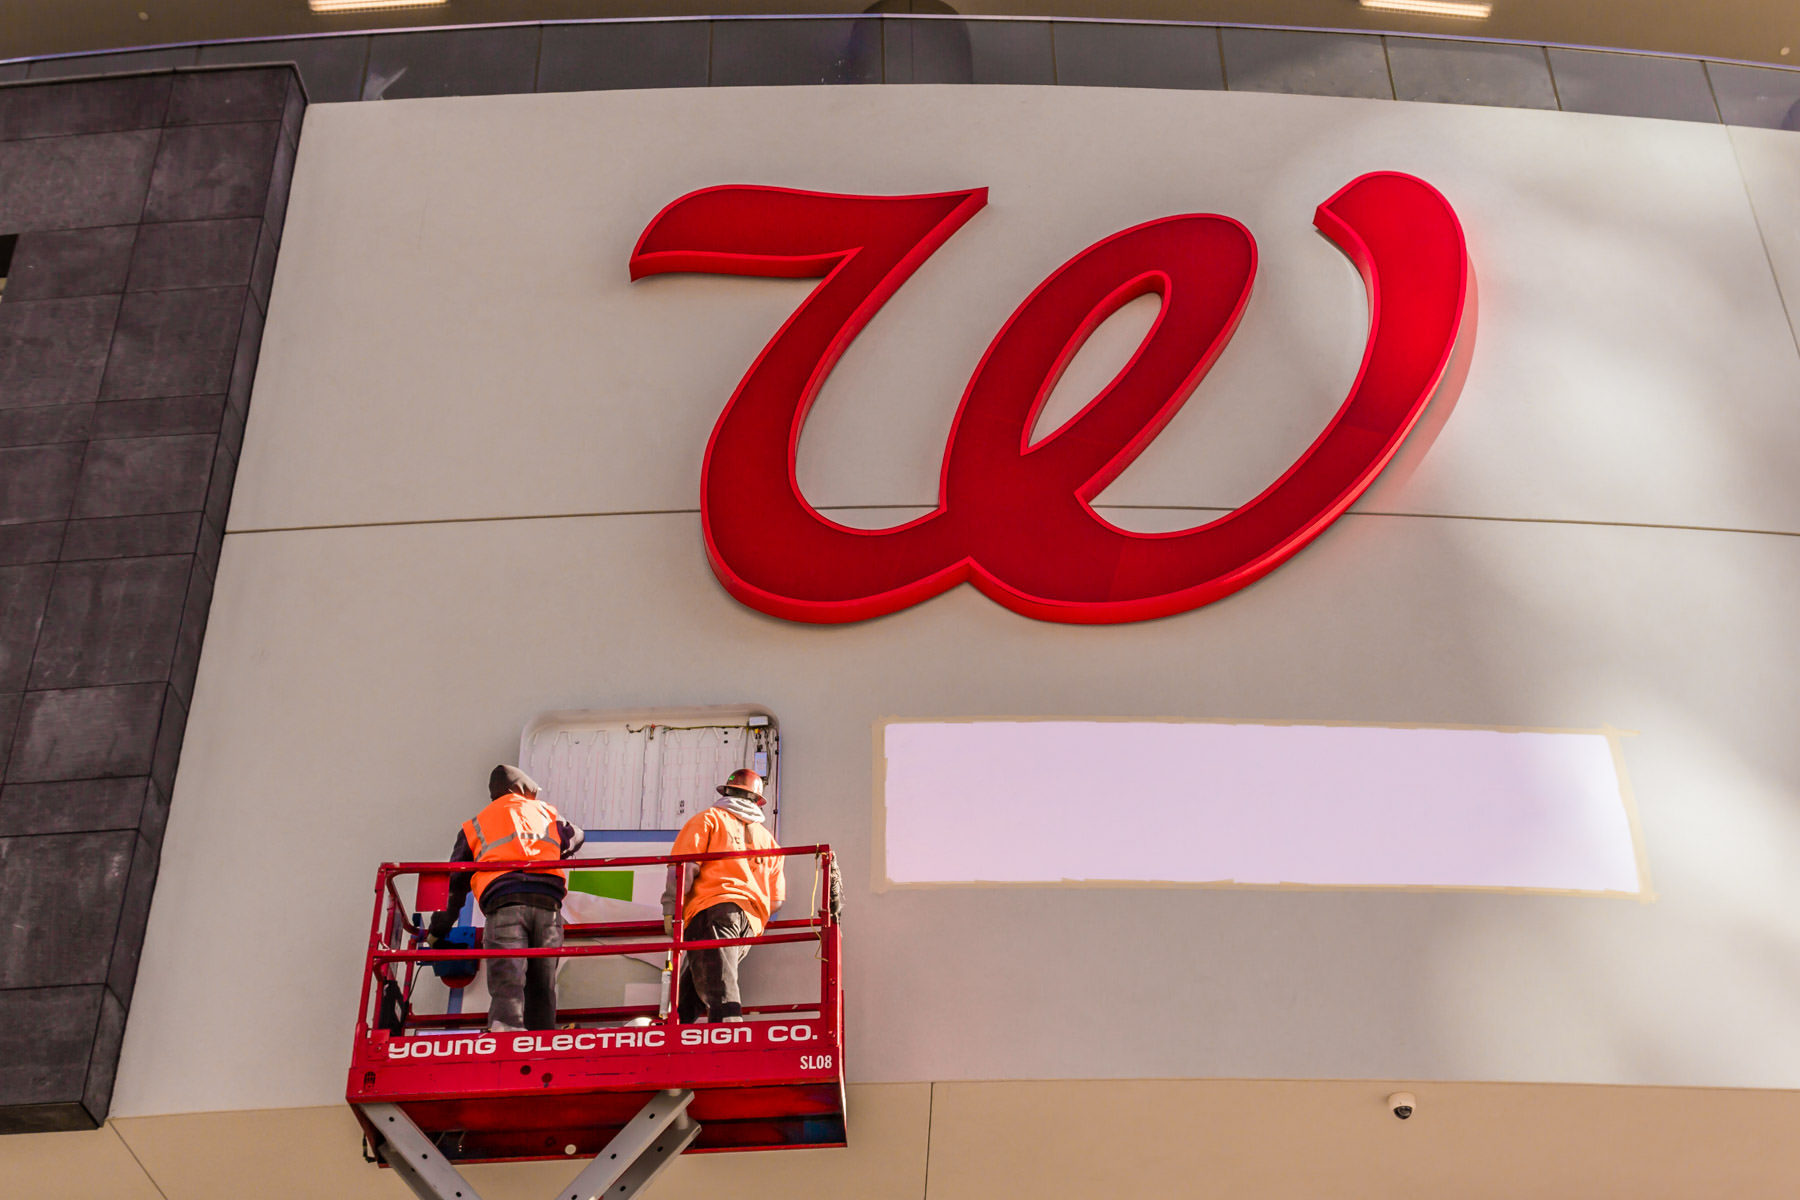 Employees of the Young Electric Sign Company—creators of most of Las Vegas' iconic signs—install signage at a new Walgreens on The Strip, adjacent to Planet Hollywood.